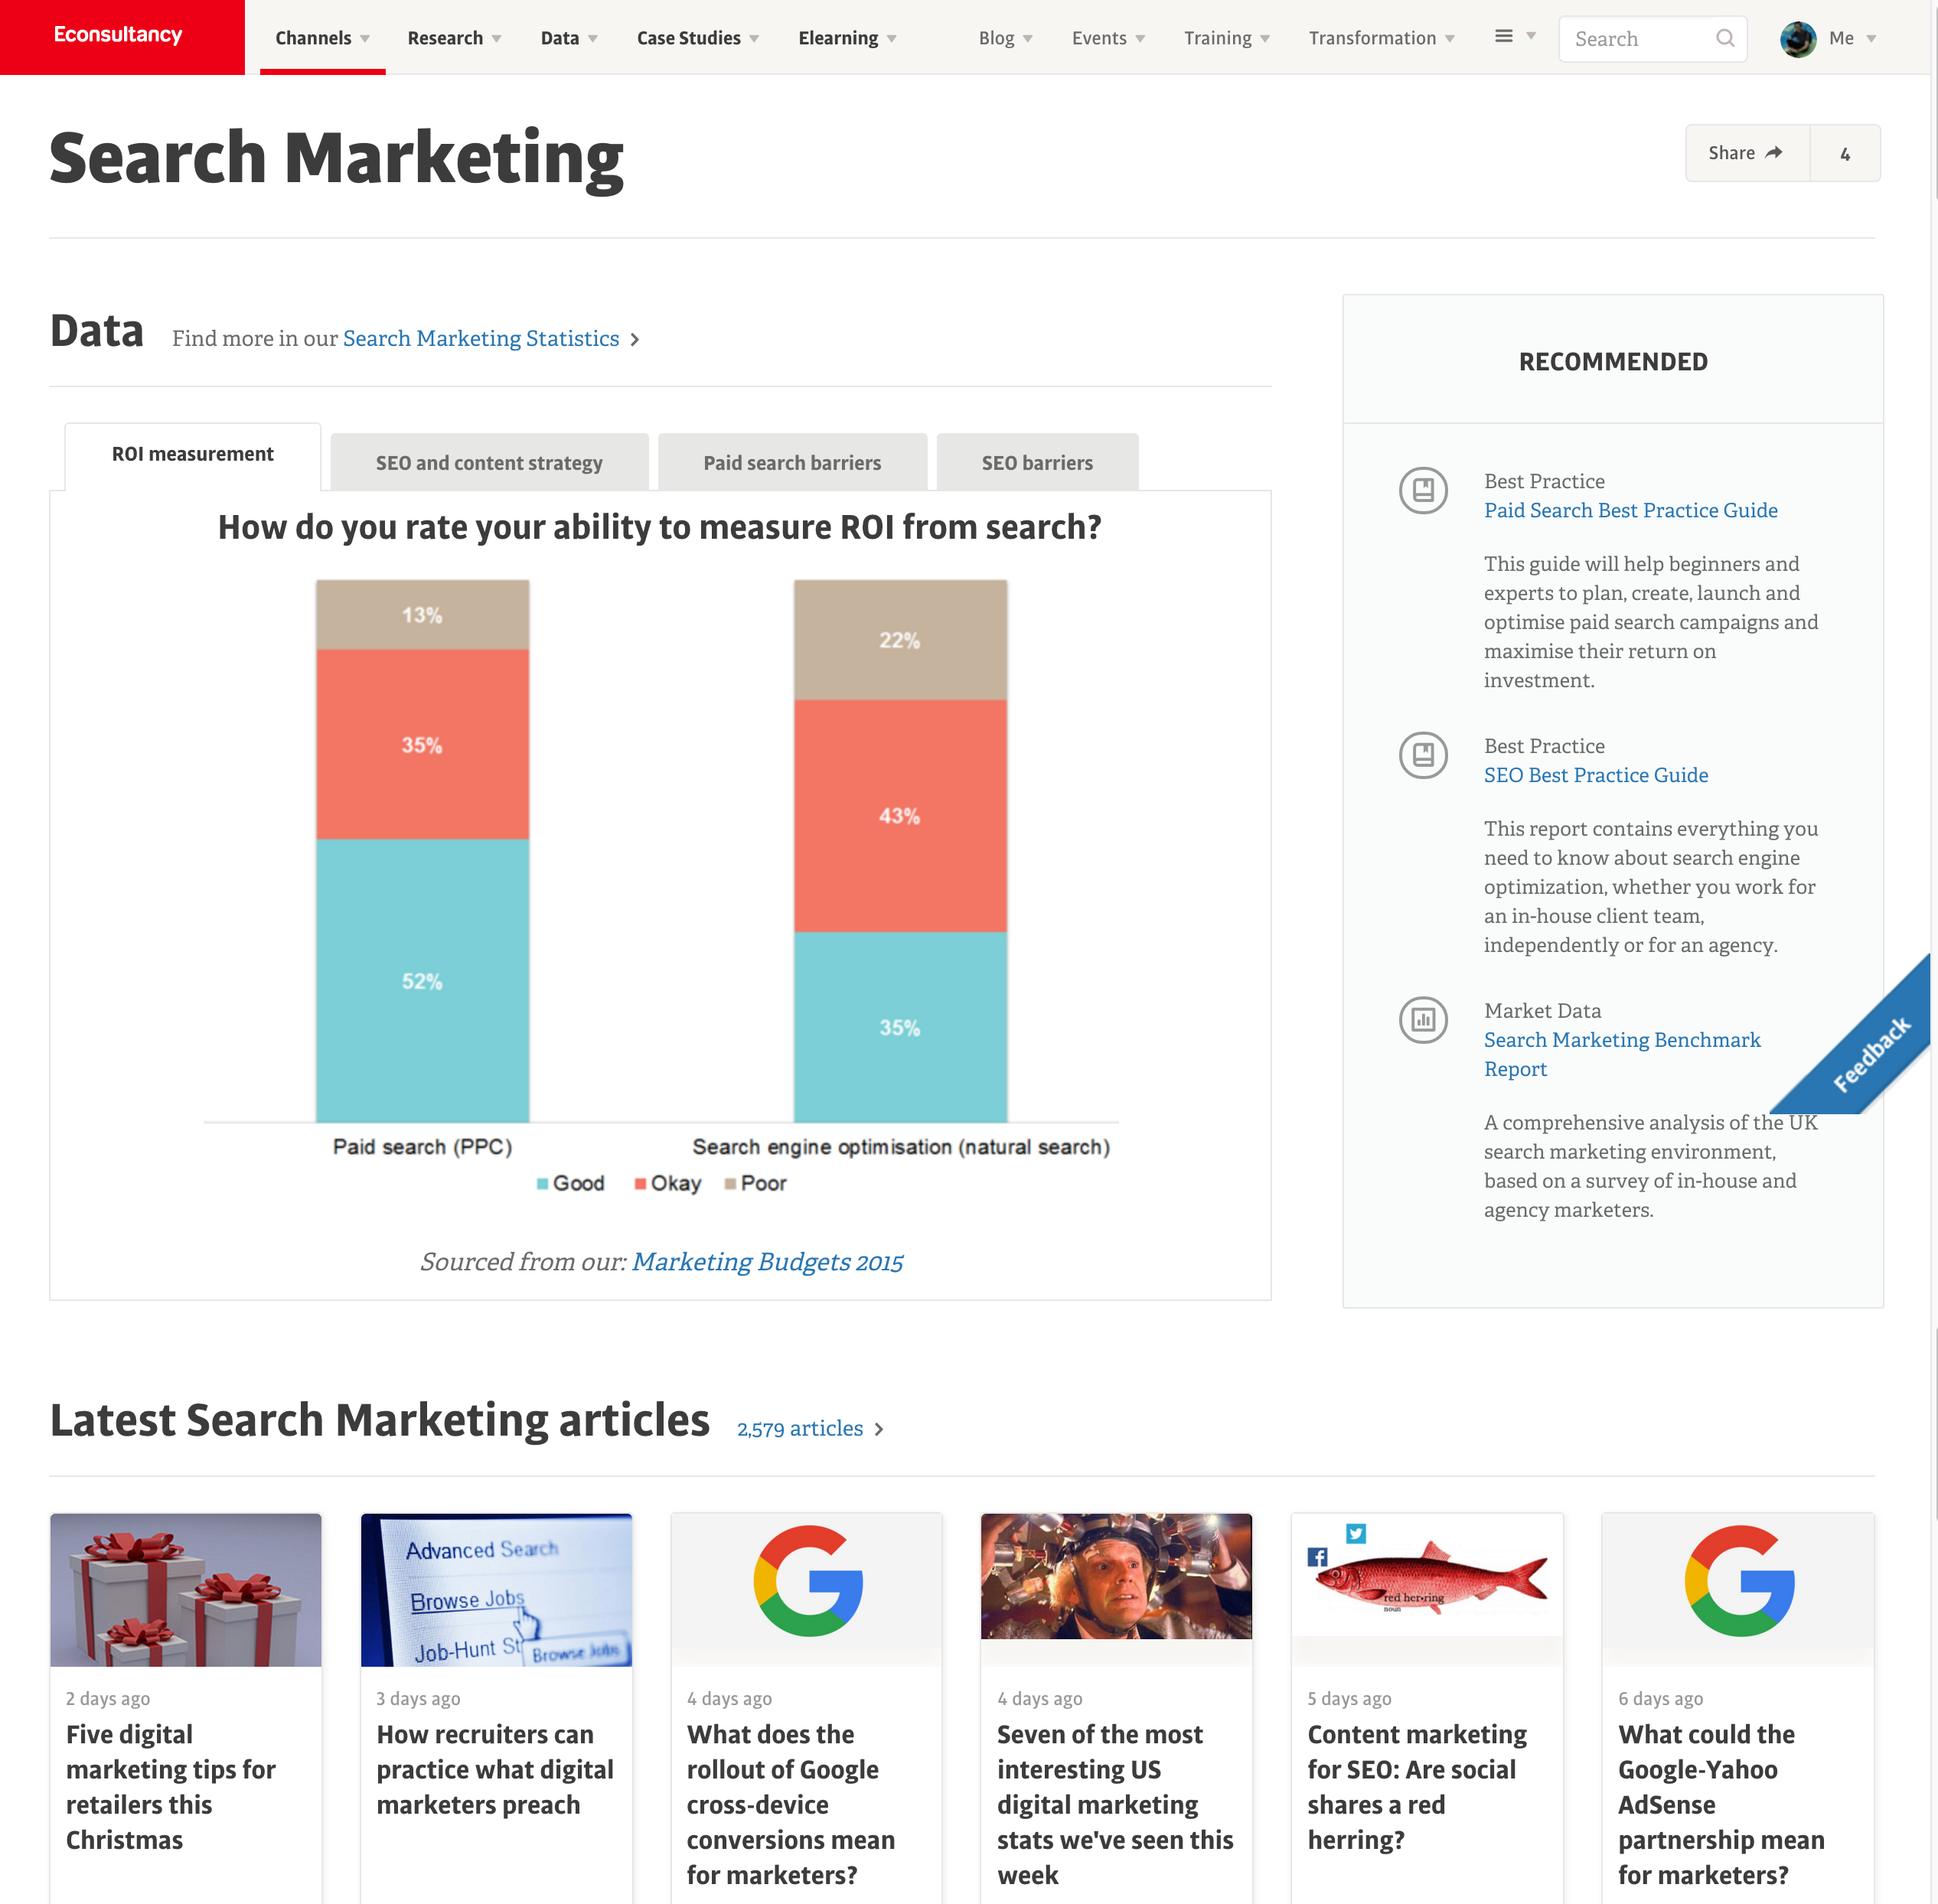 search marketing topic page